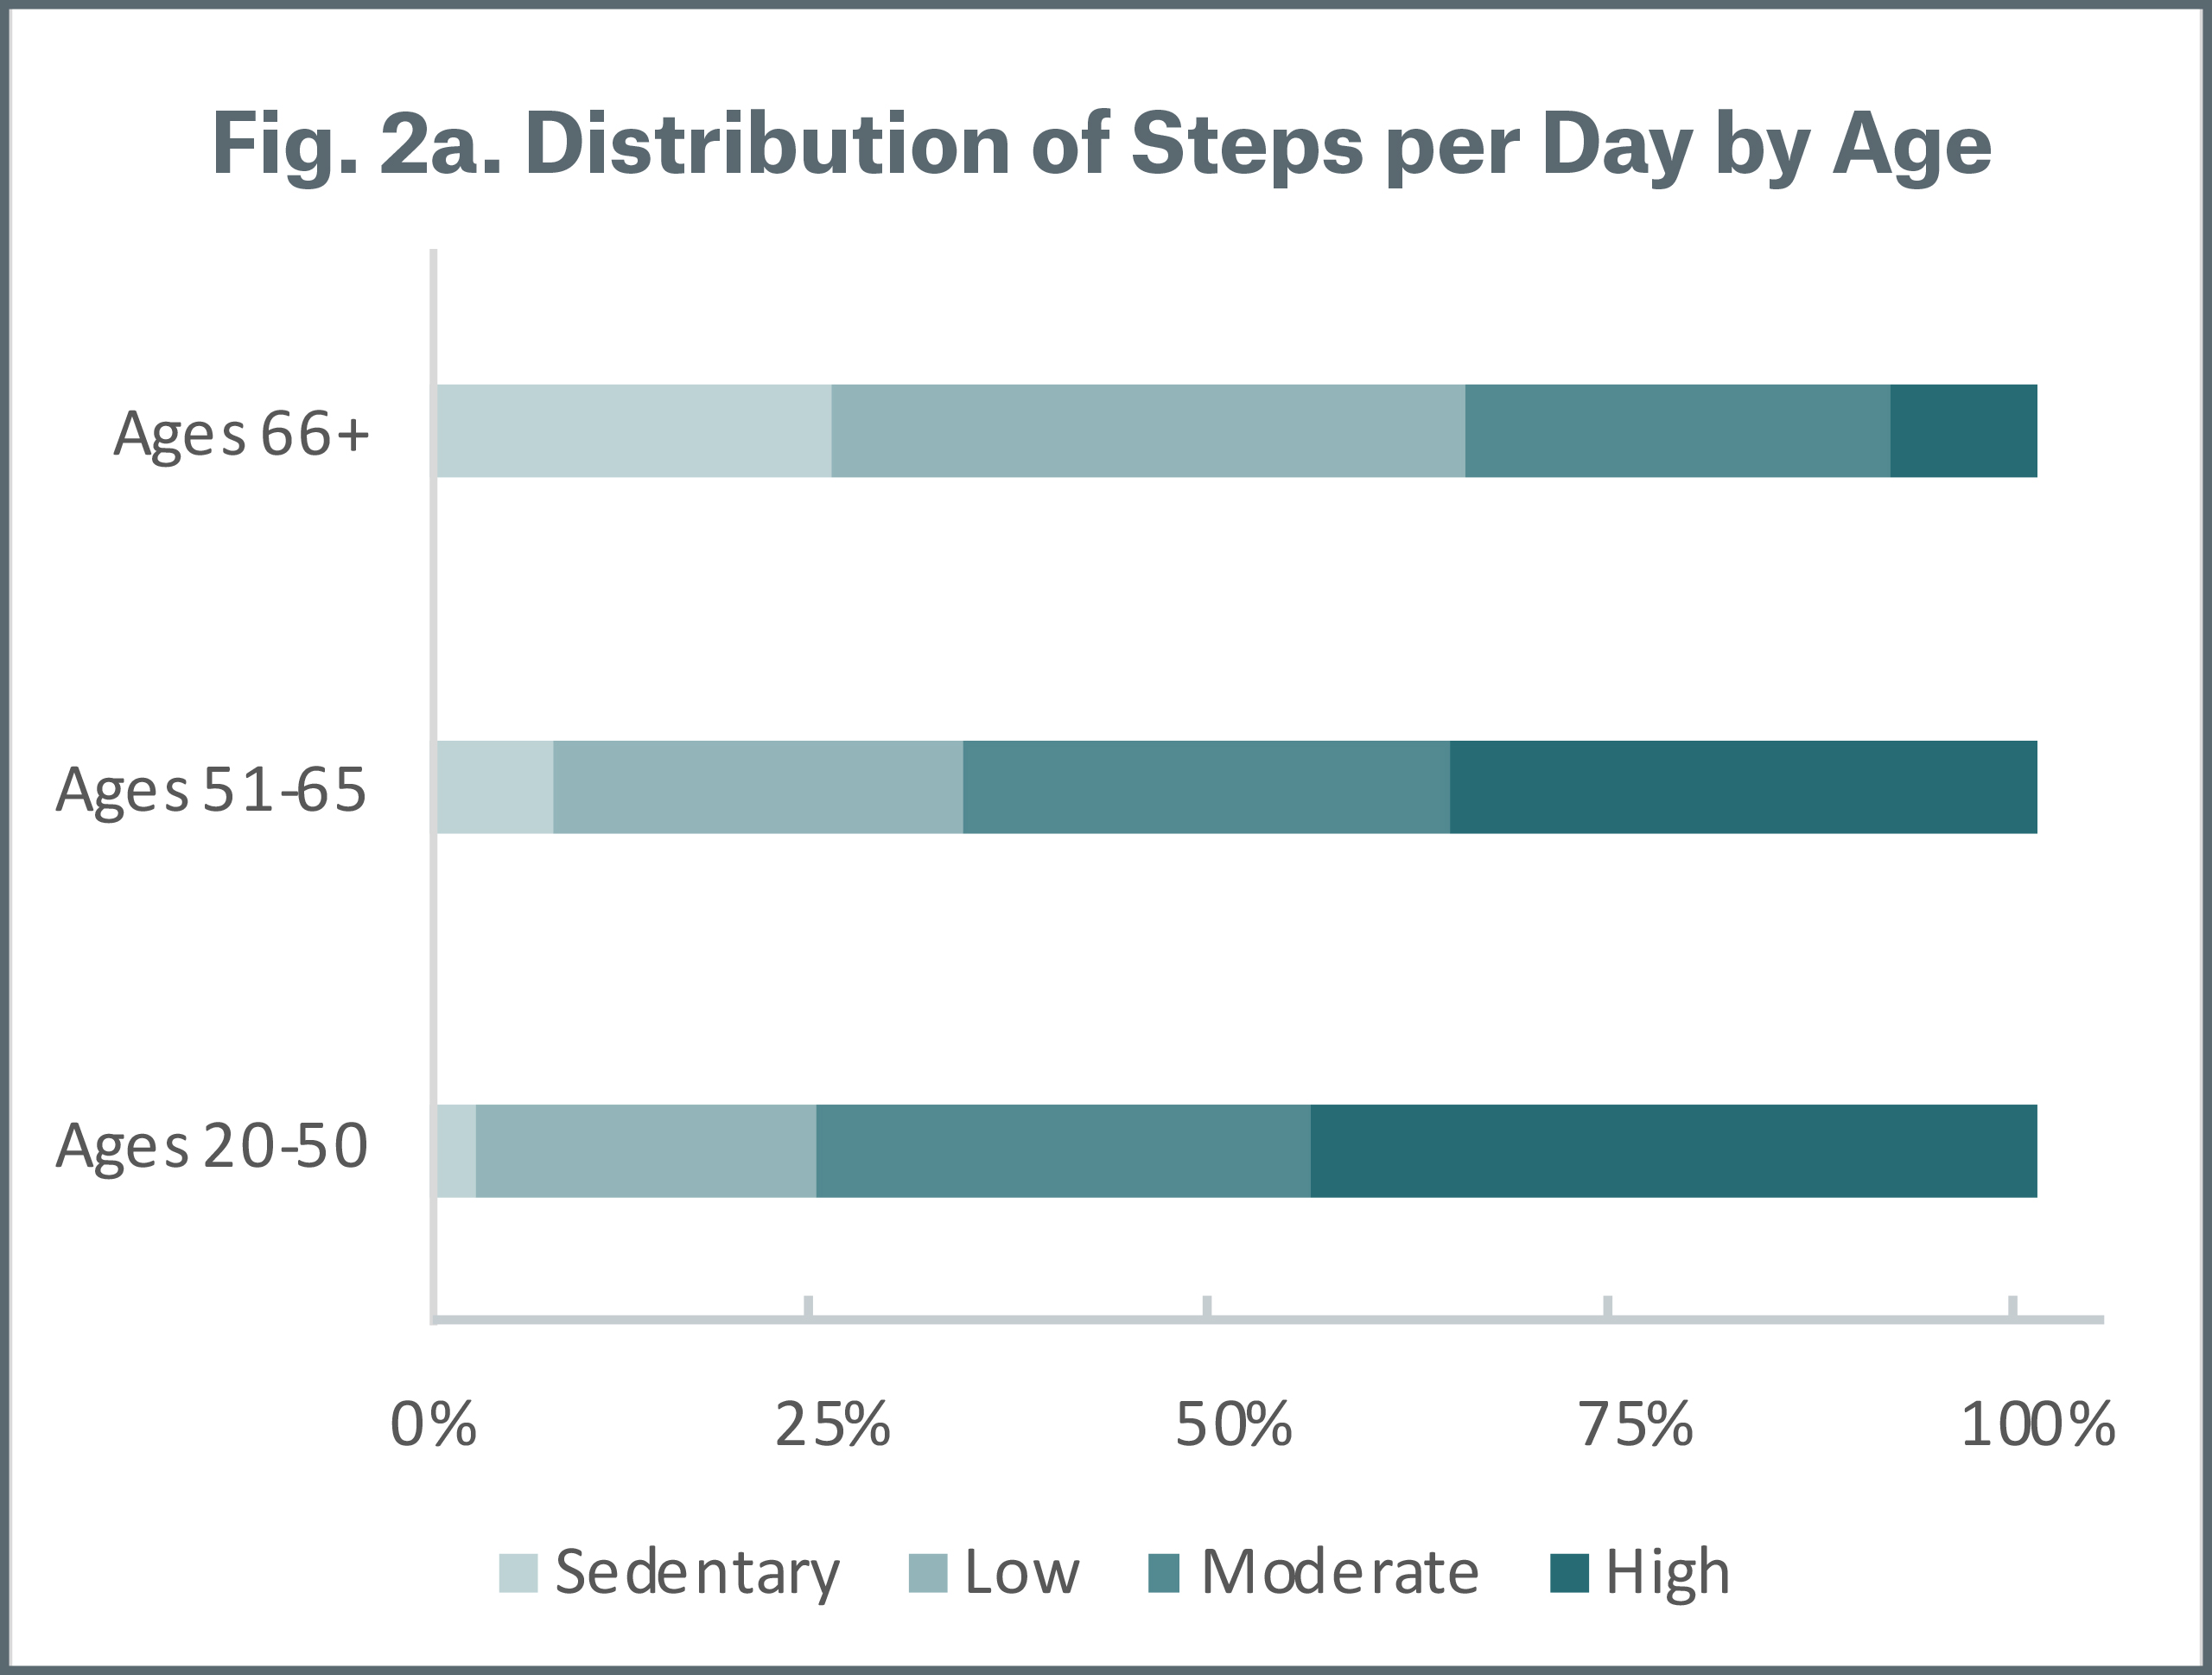 Figure 2a Distribution of Steps per Day by Age